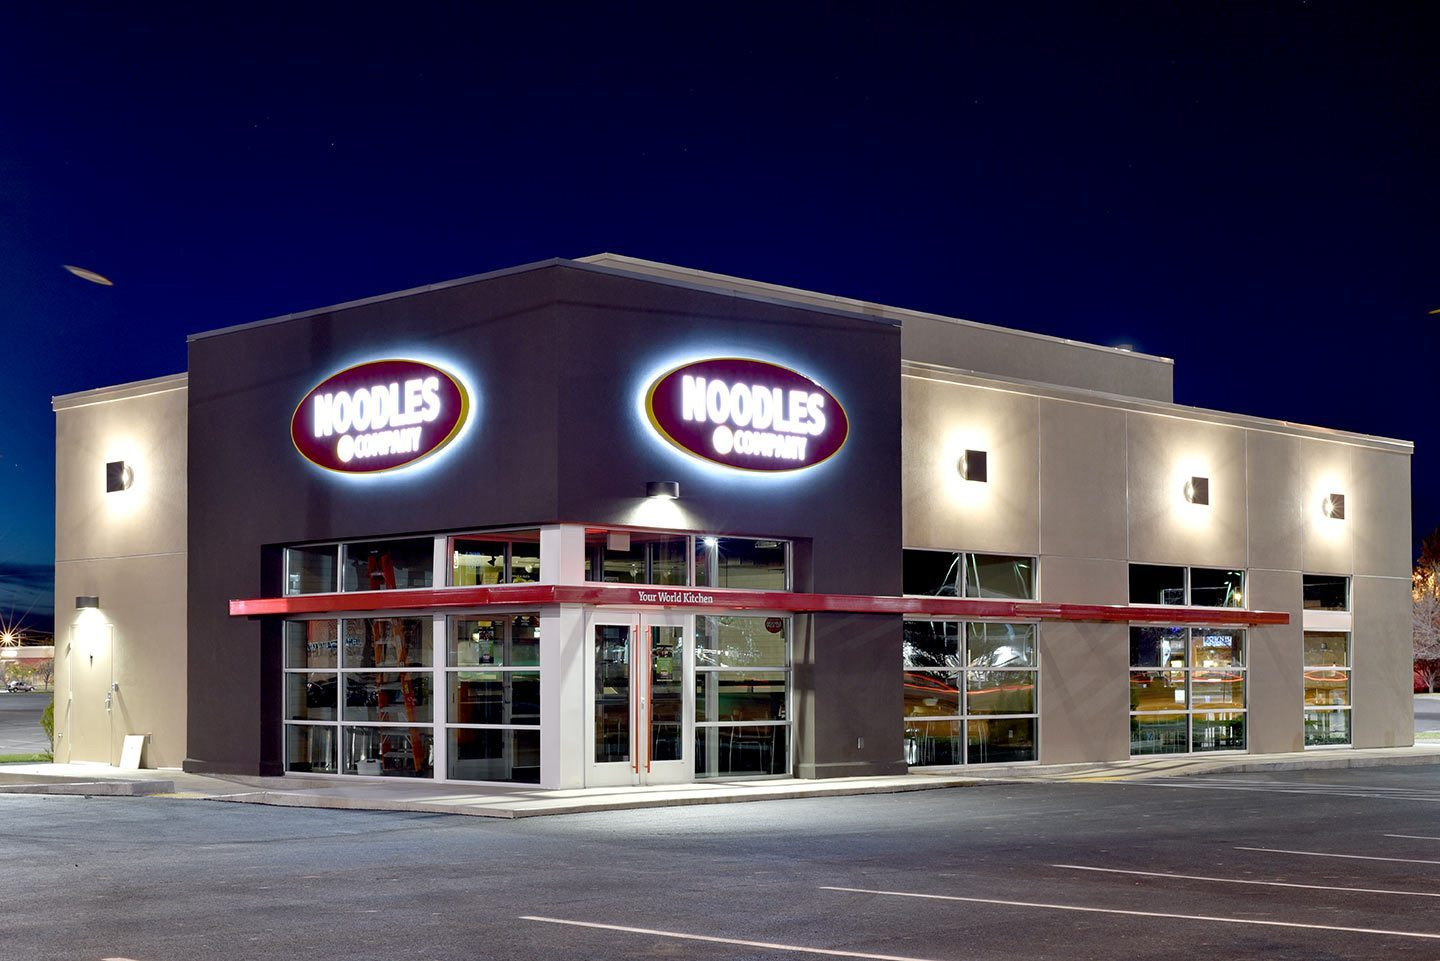 Noodles And Company Idaho Falls  Construction Solutions pany Noodles & pany